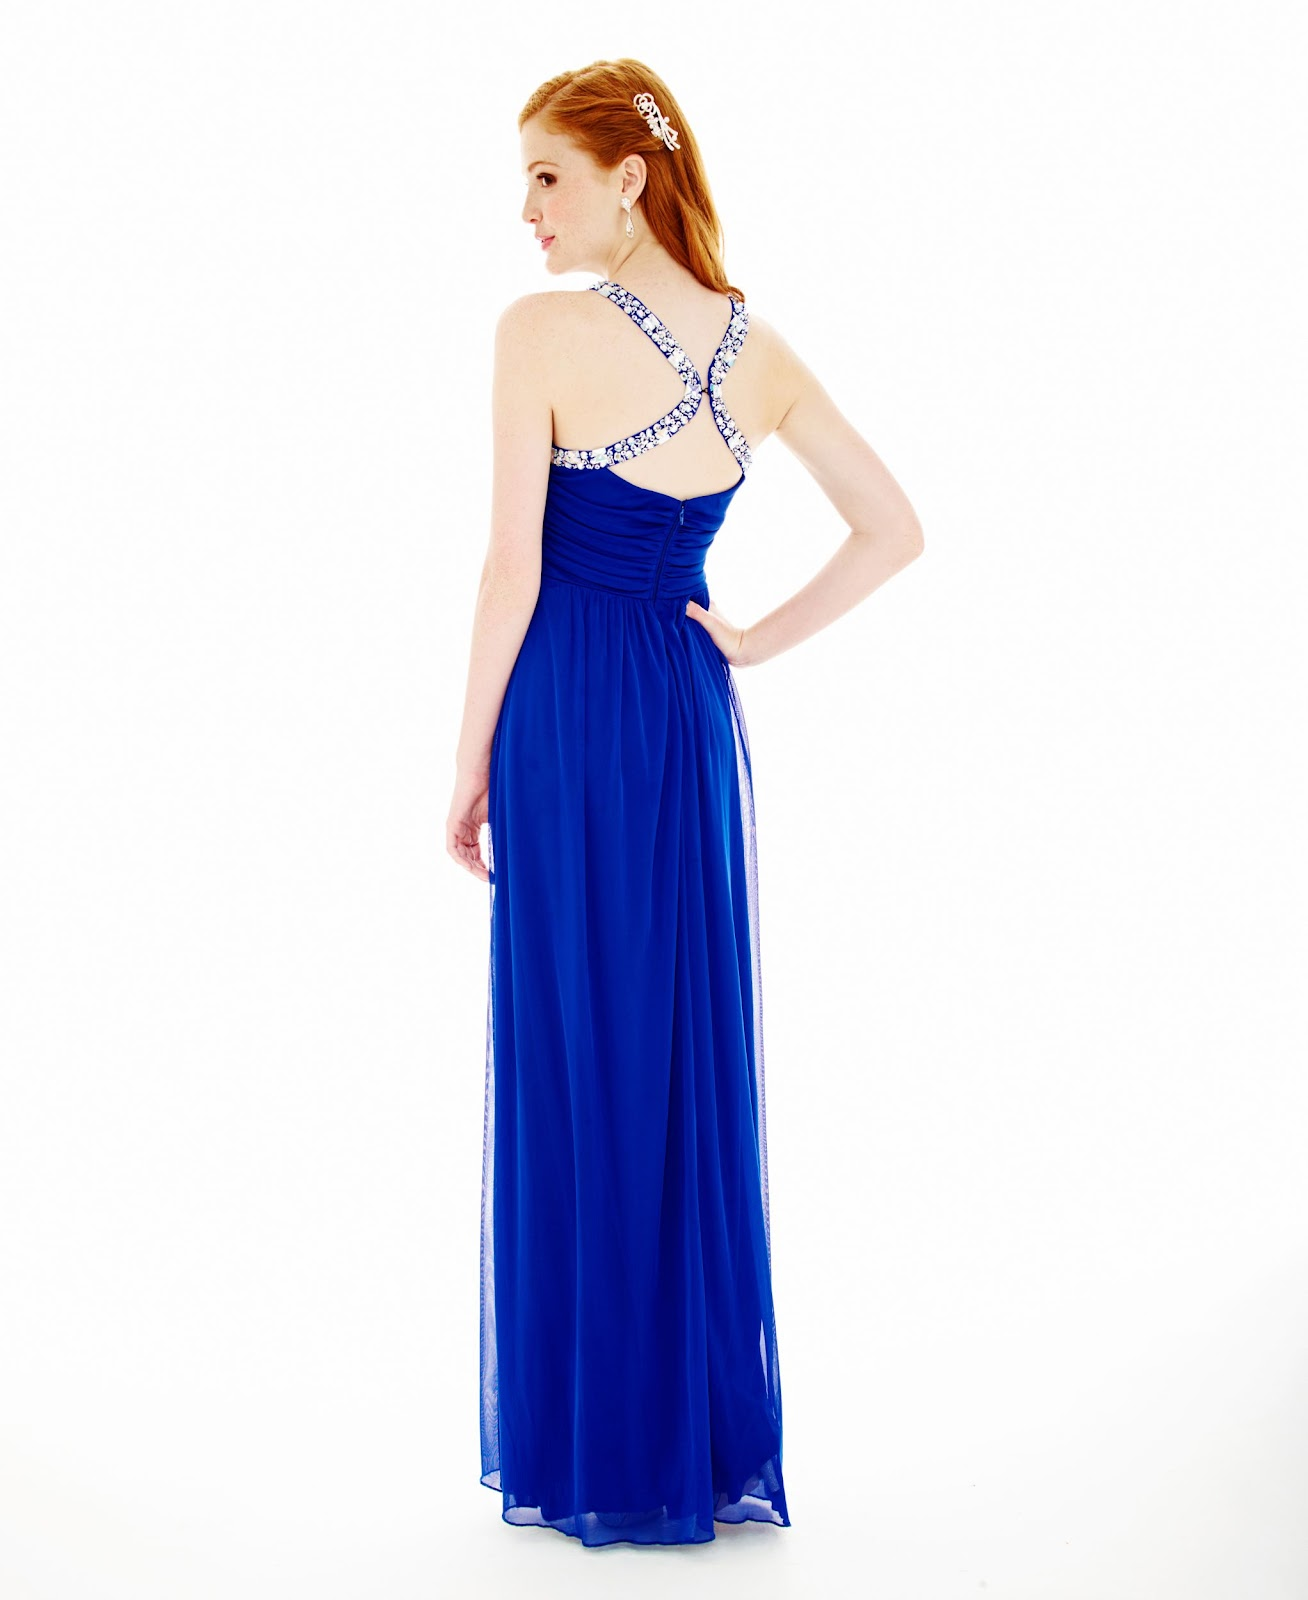 Catalog Cuties: Prom Dresses from JCPenney, Part 11